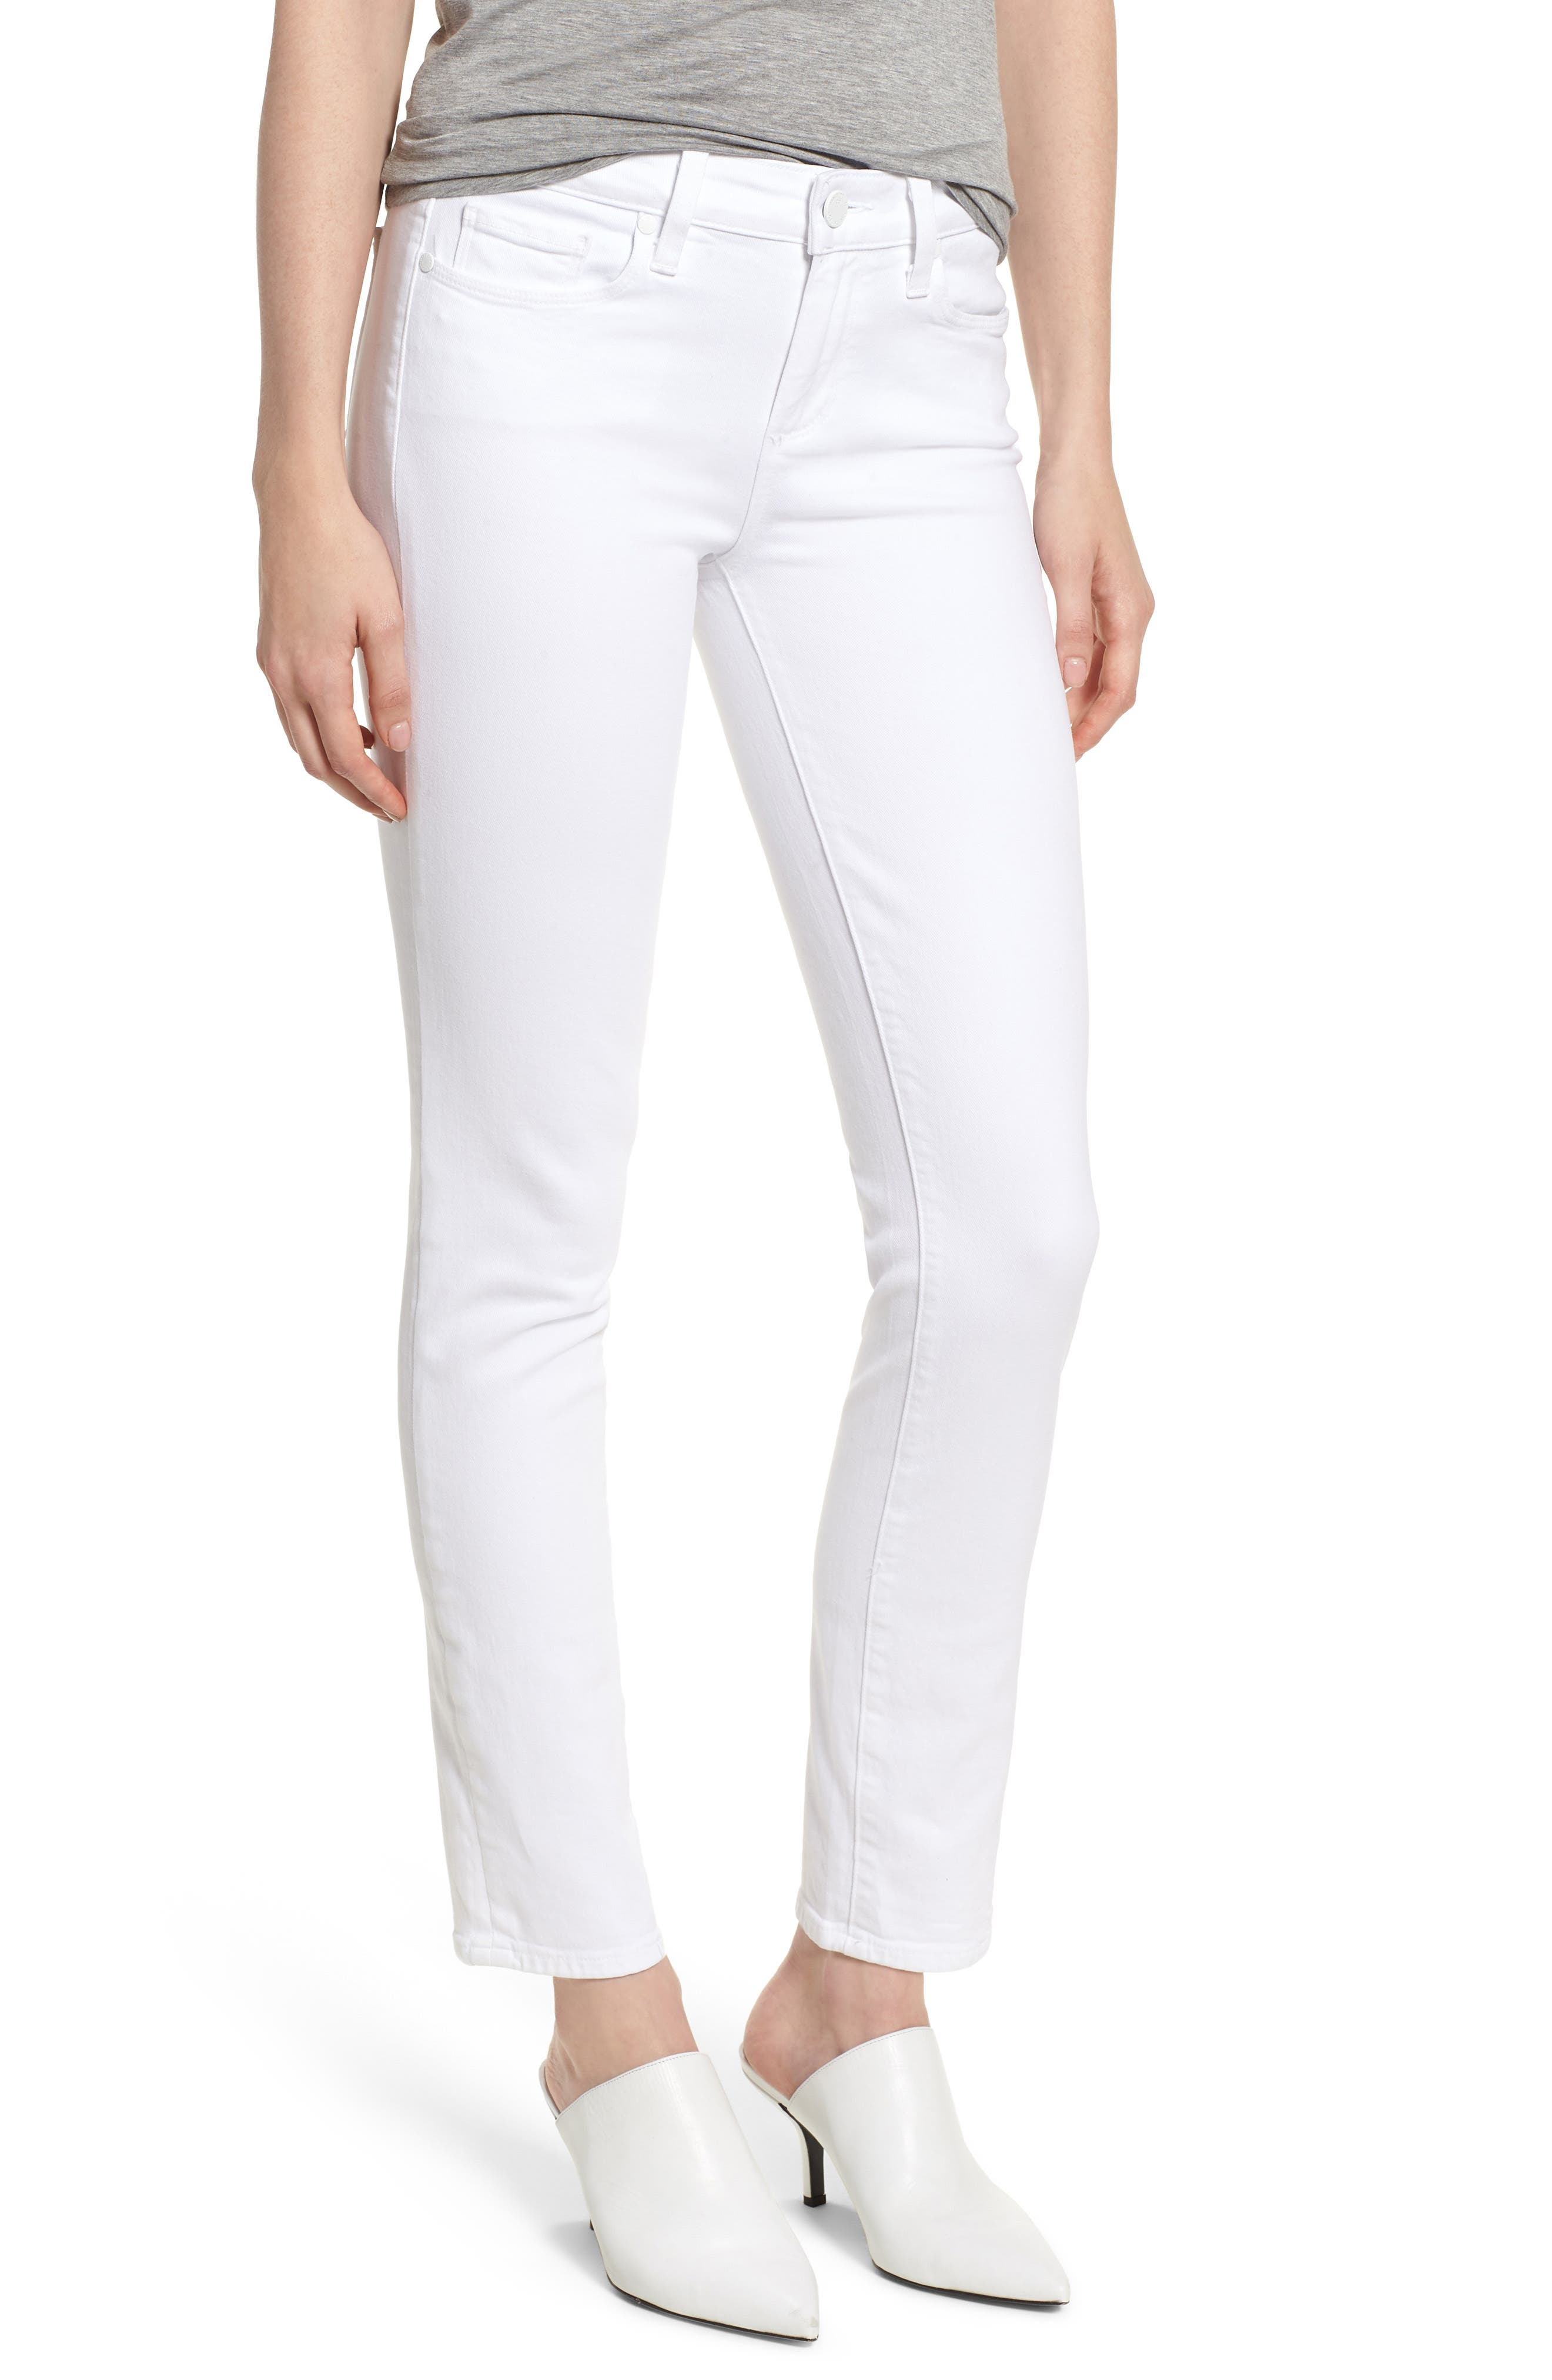 Skyline Ankle Peg Skinny Jeans,                             Main thumbnail 1, color,                             CRISP WHITE